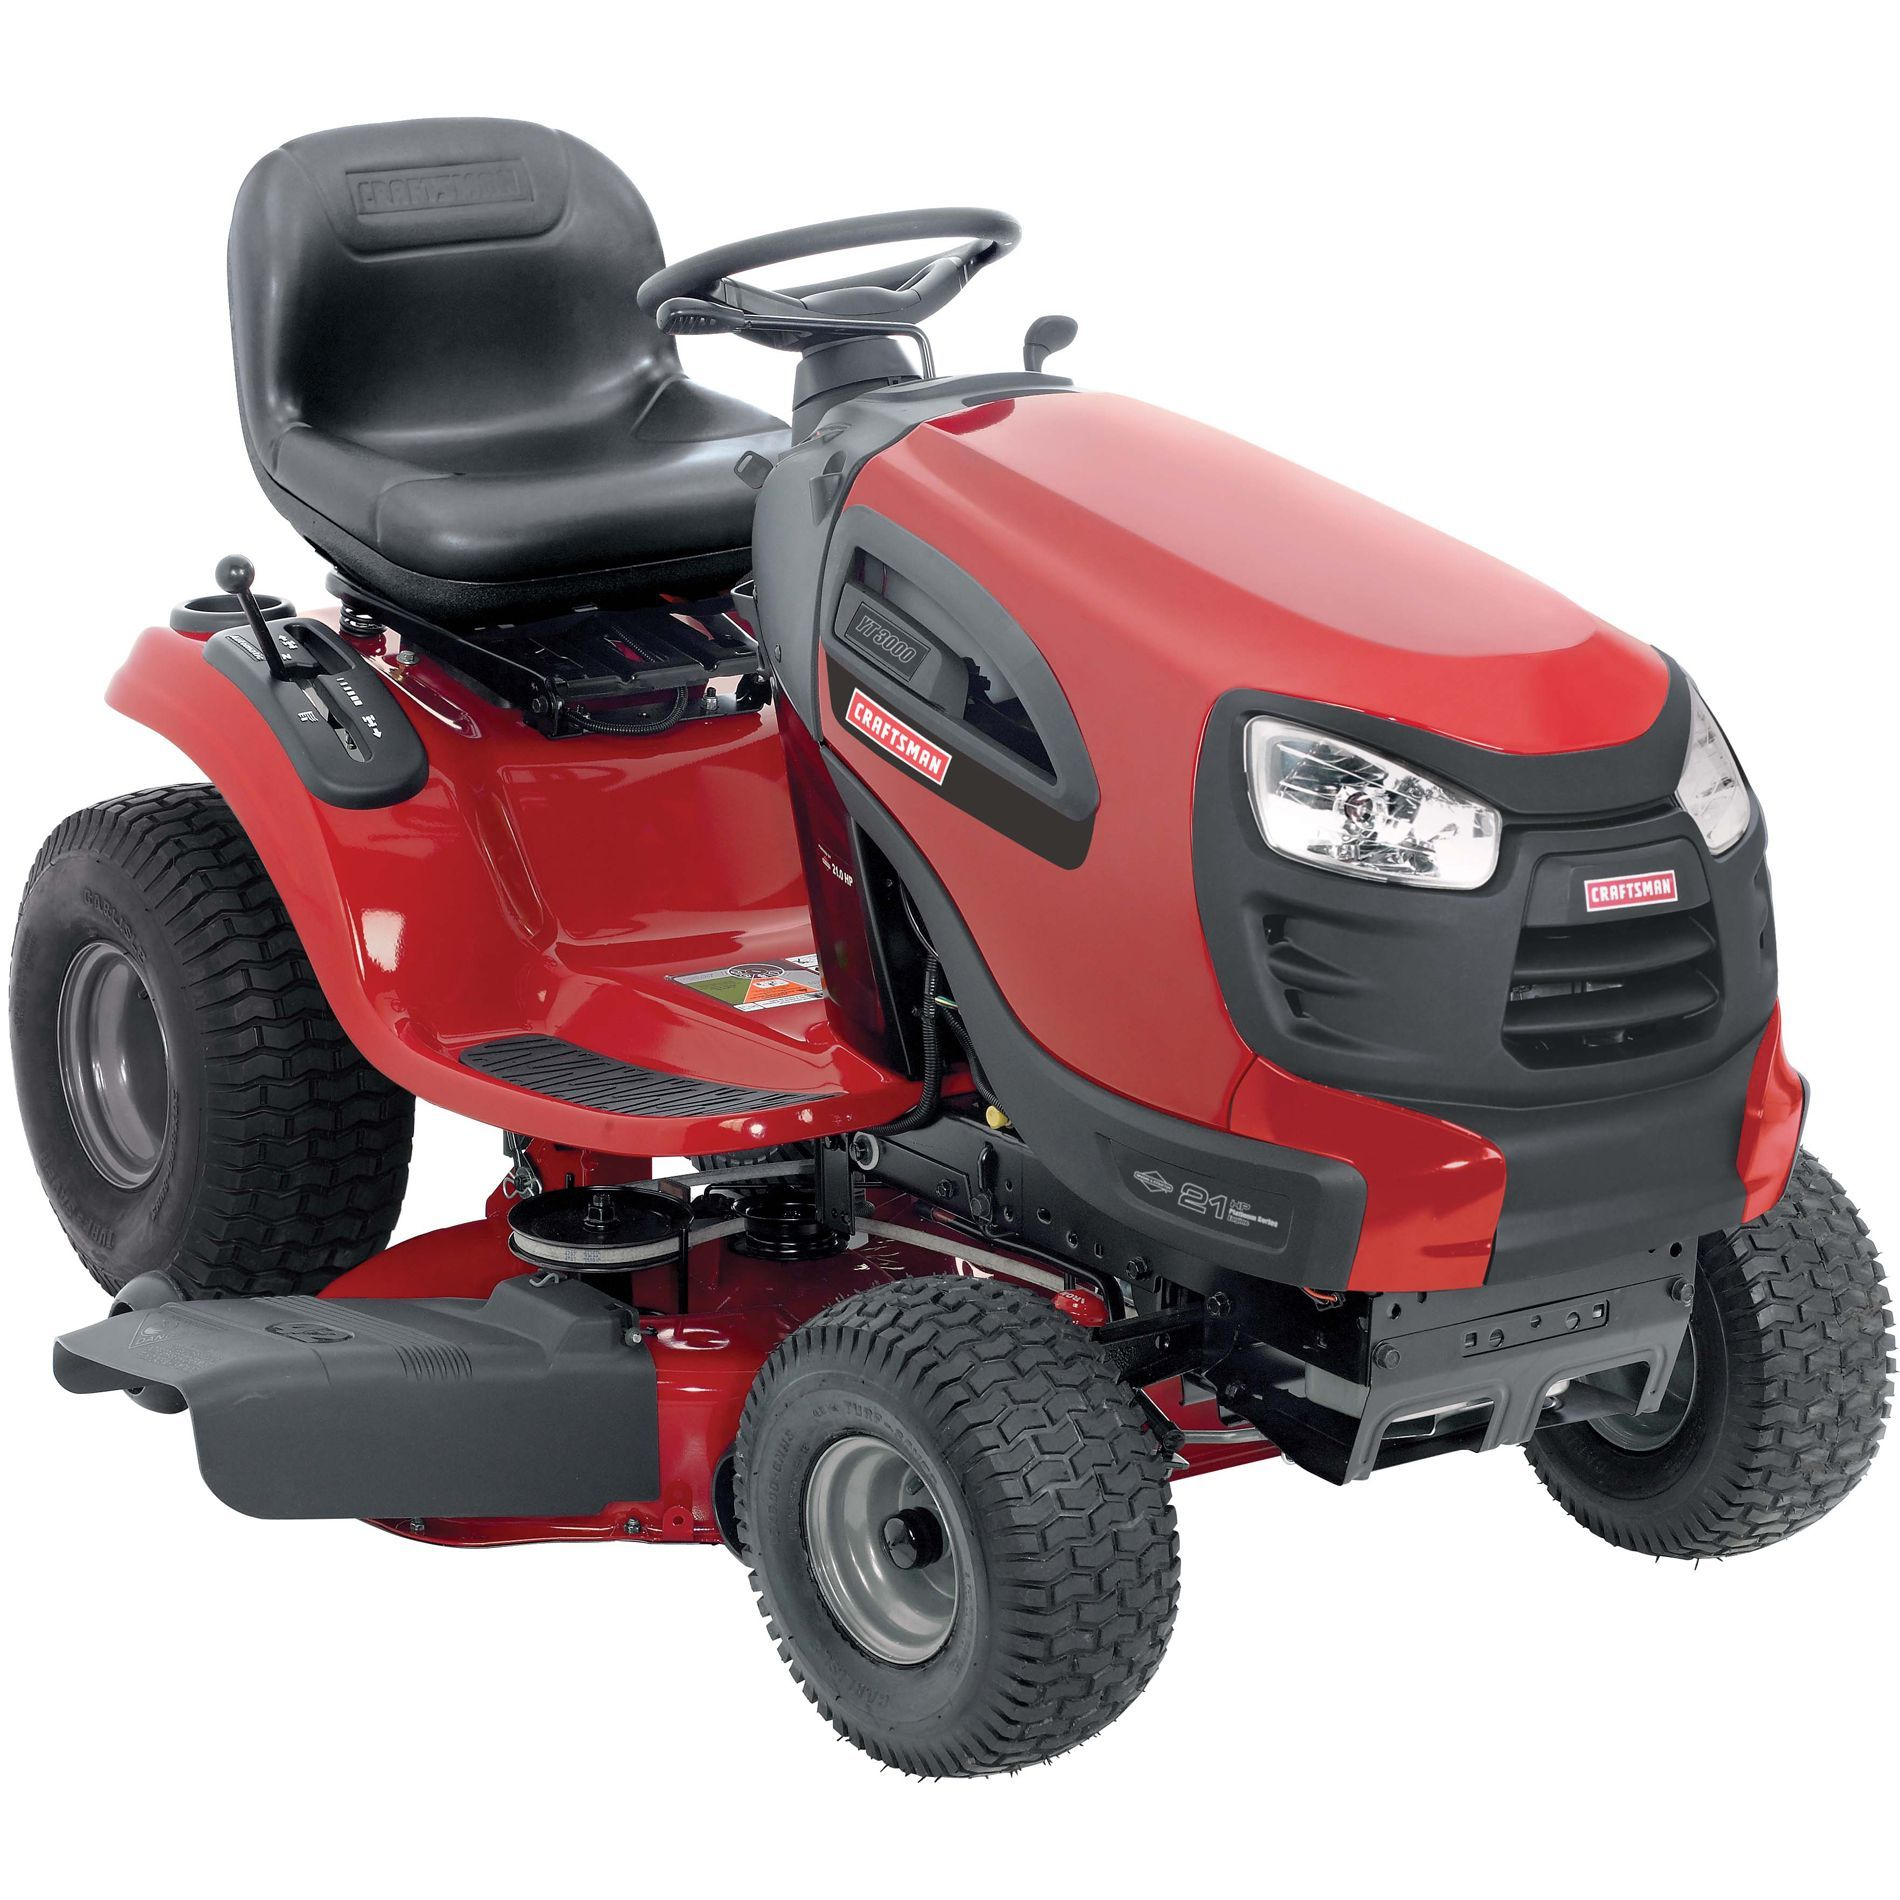 Best Riding Lawnmower For 2013 Consider These Mowers Gardening pertaining to measurements 1900 X 1900